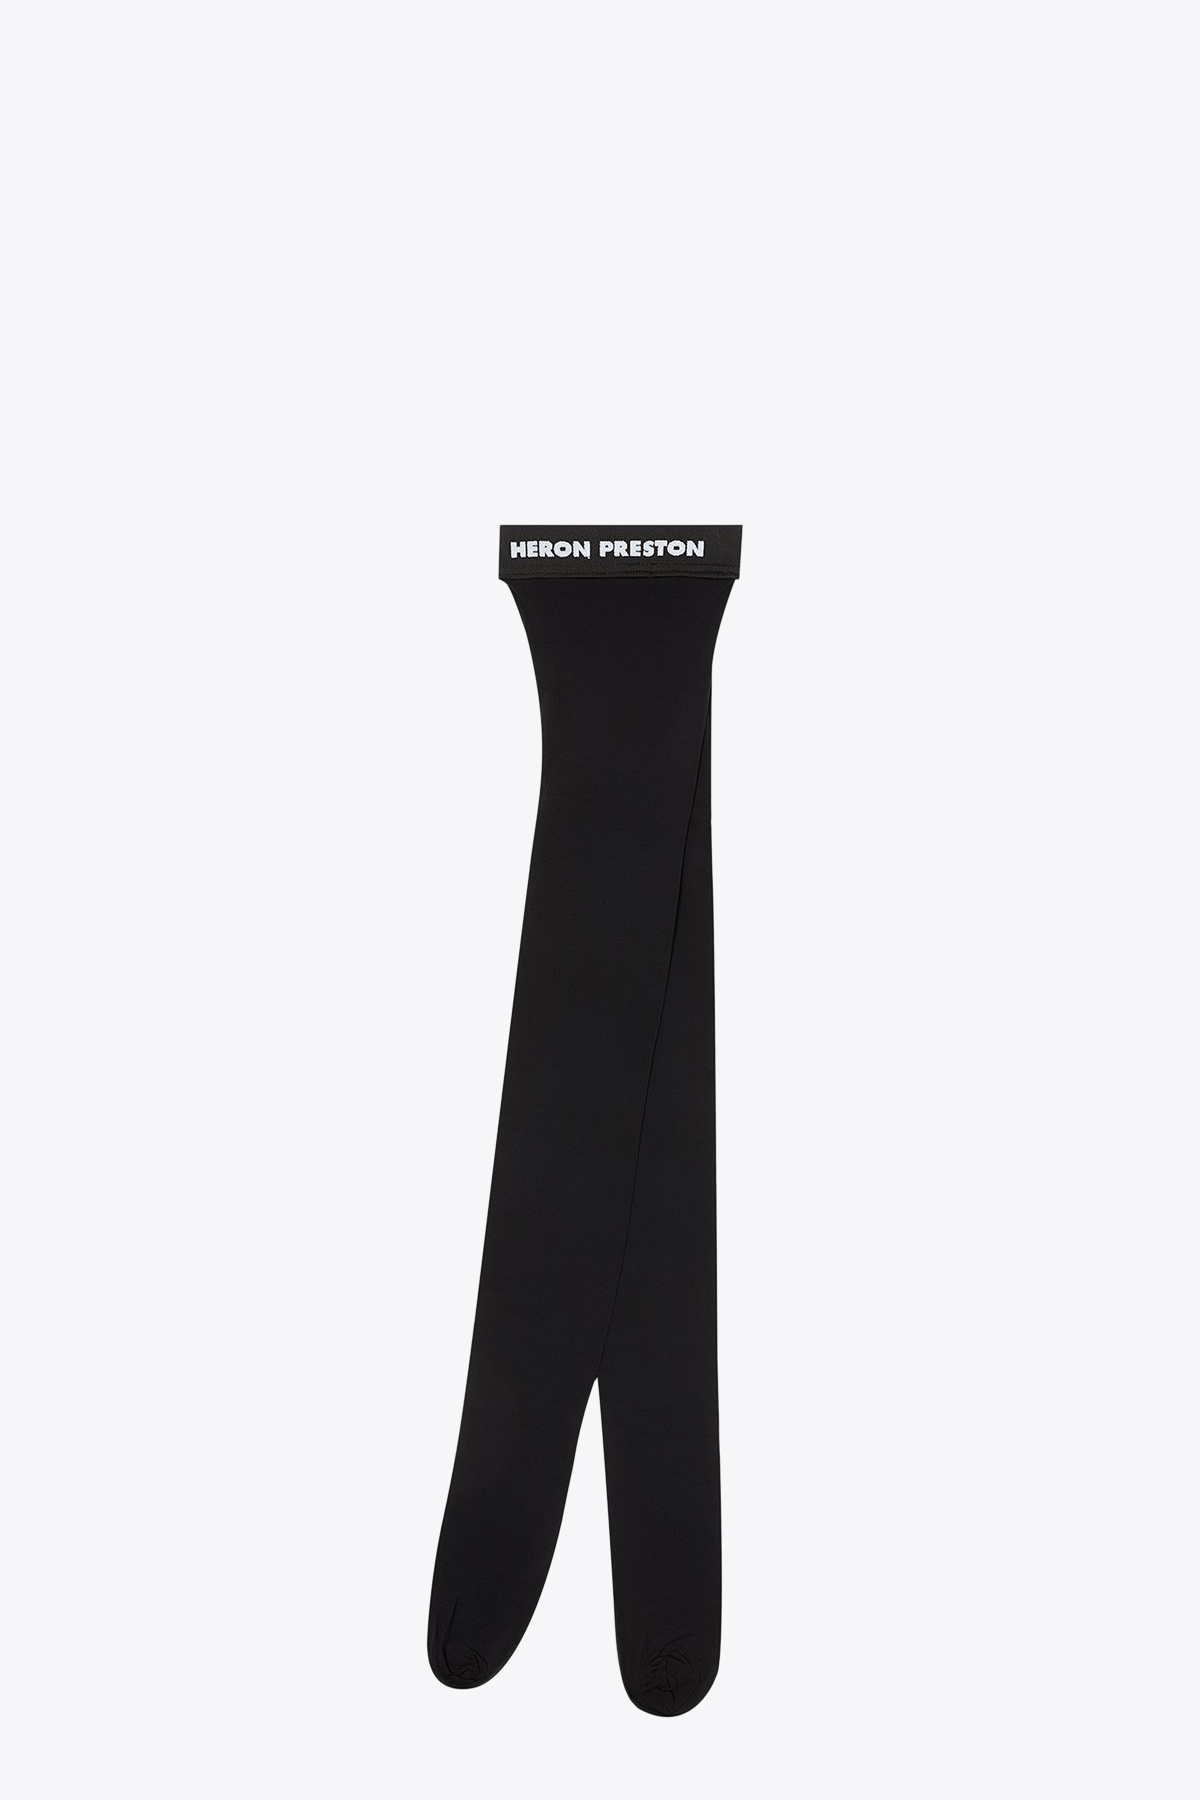 LOGO TIGHTS HERON PRESTON | 33 | HWME001E20KNI0021000 TIGHTSBLACK